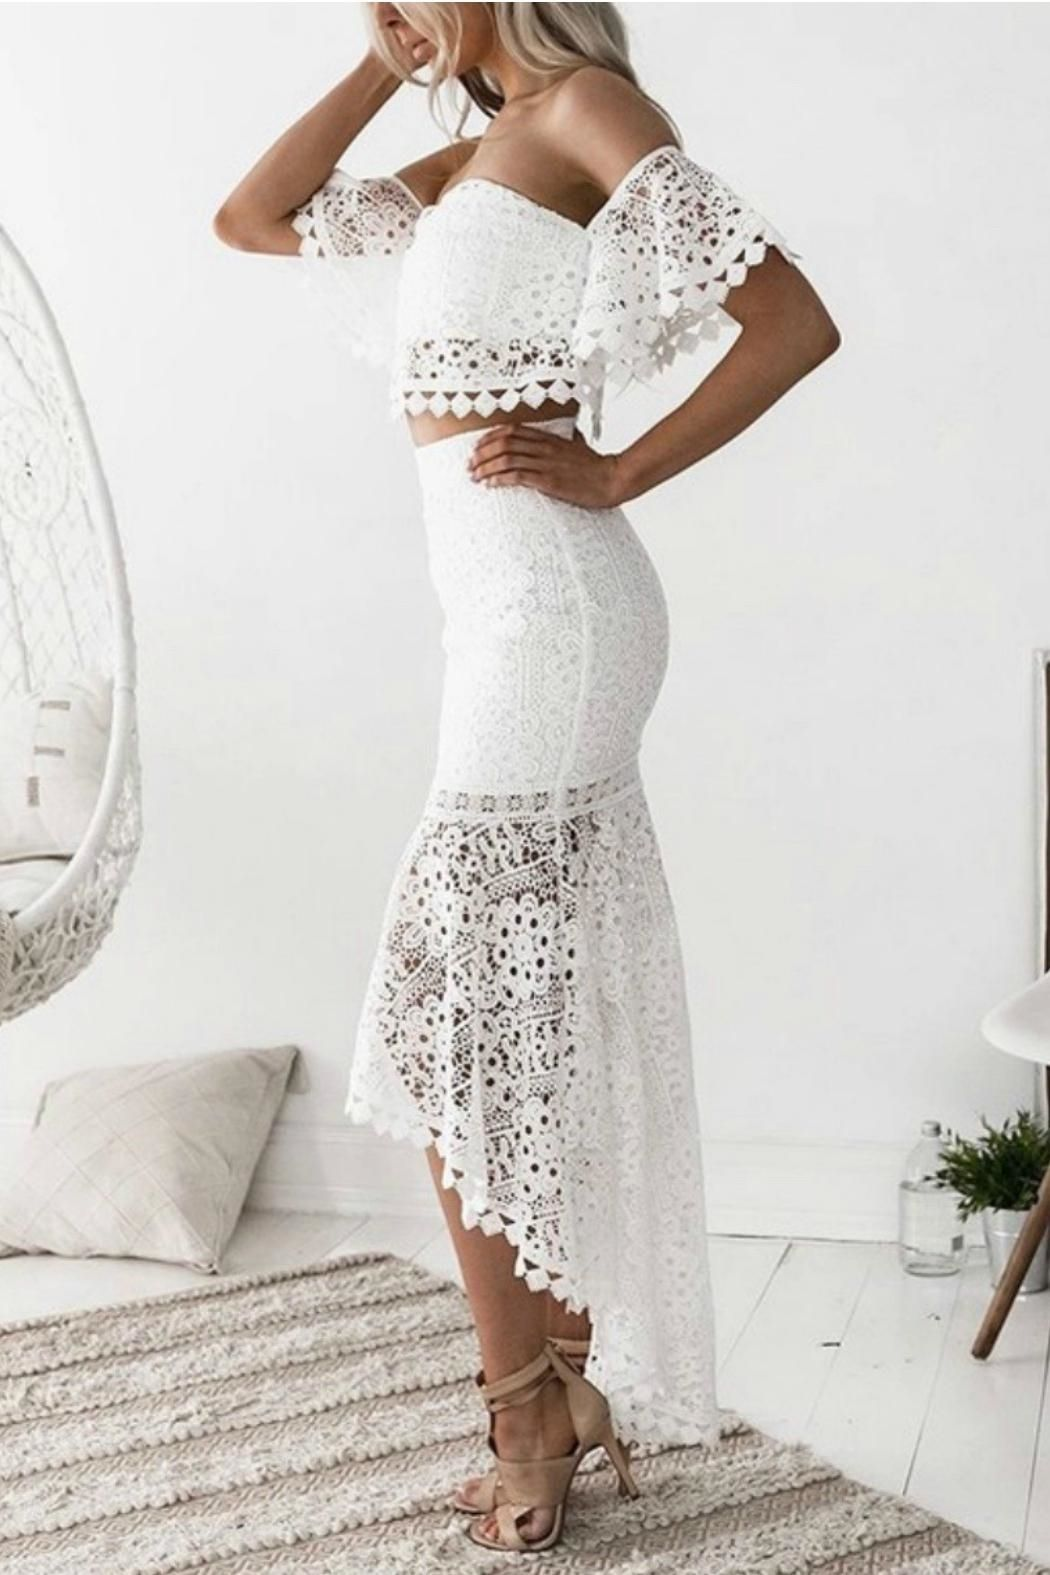 Esley Collection Two Piece Lace Dress Front Full Image White Lace Bodycon Lace Suit Pencil Skirt Casual [ 1575 x 1050 Pixel ]